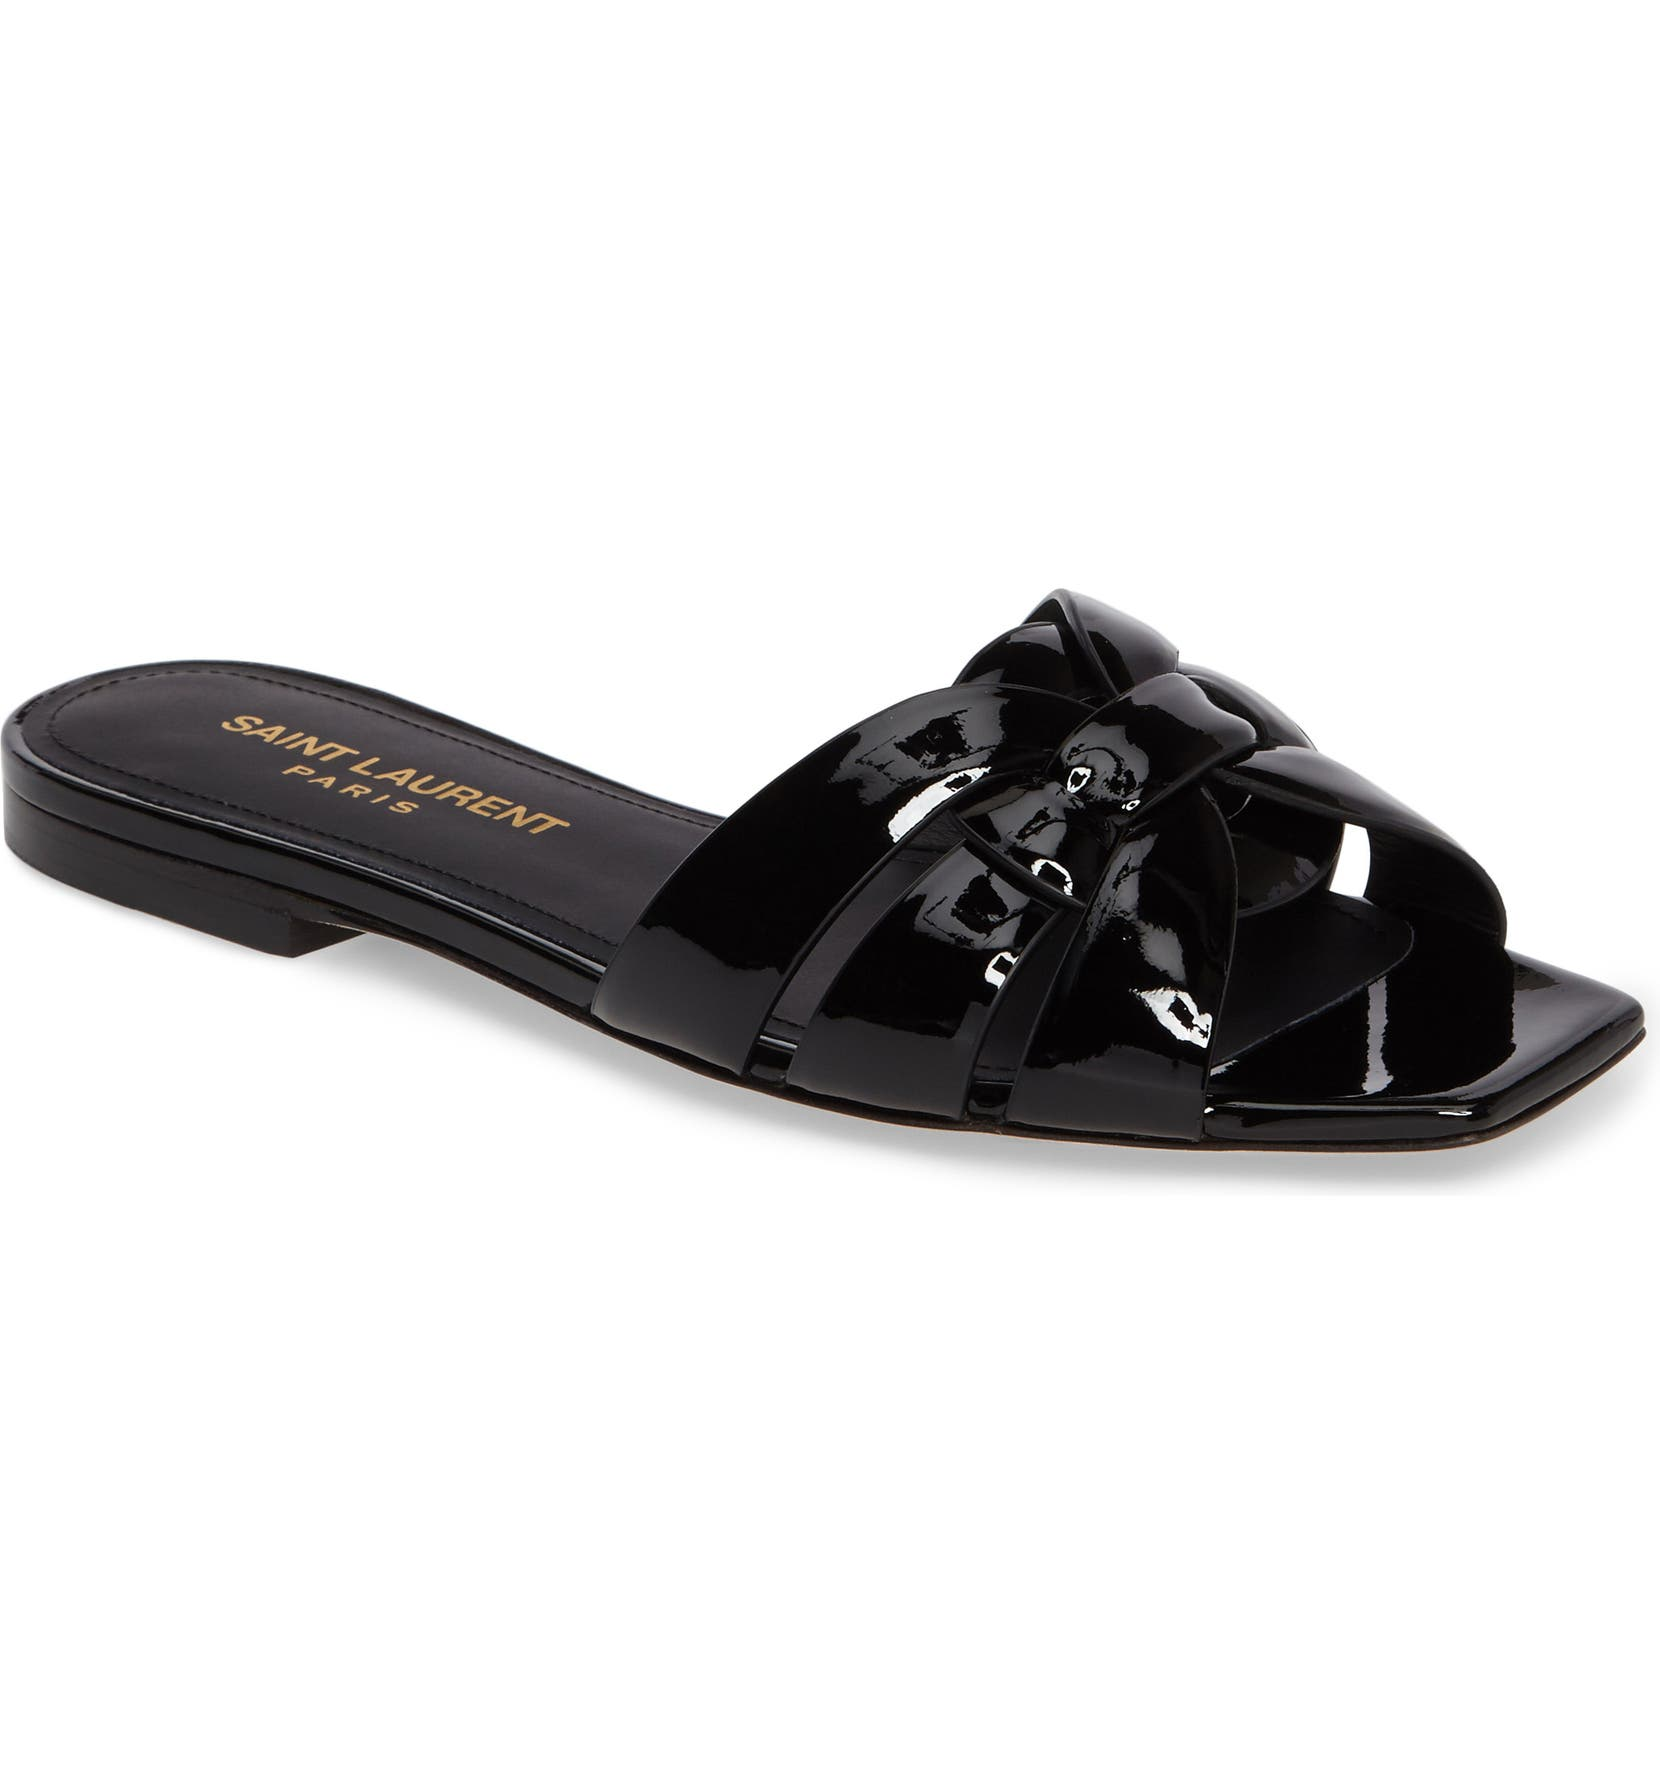 b4a8fccd7 Saint Laurent Tribute Slide Sandal (Women)